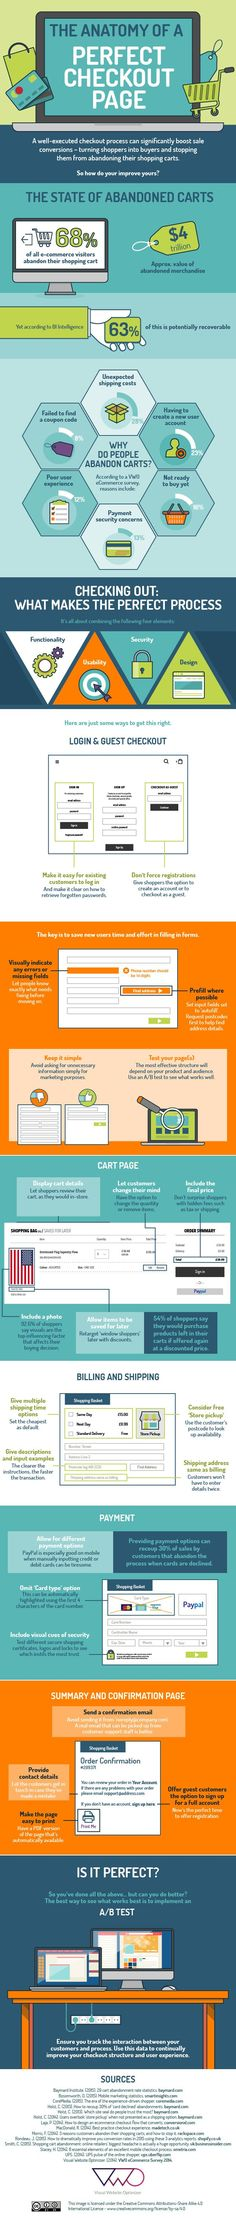 The Anatomy of a Perfect Checkout Page #infographic #Business #Marketing